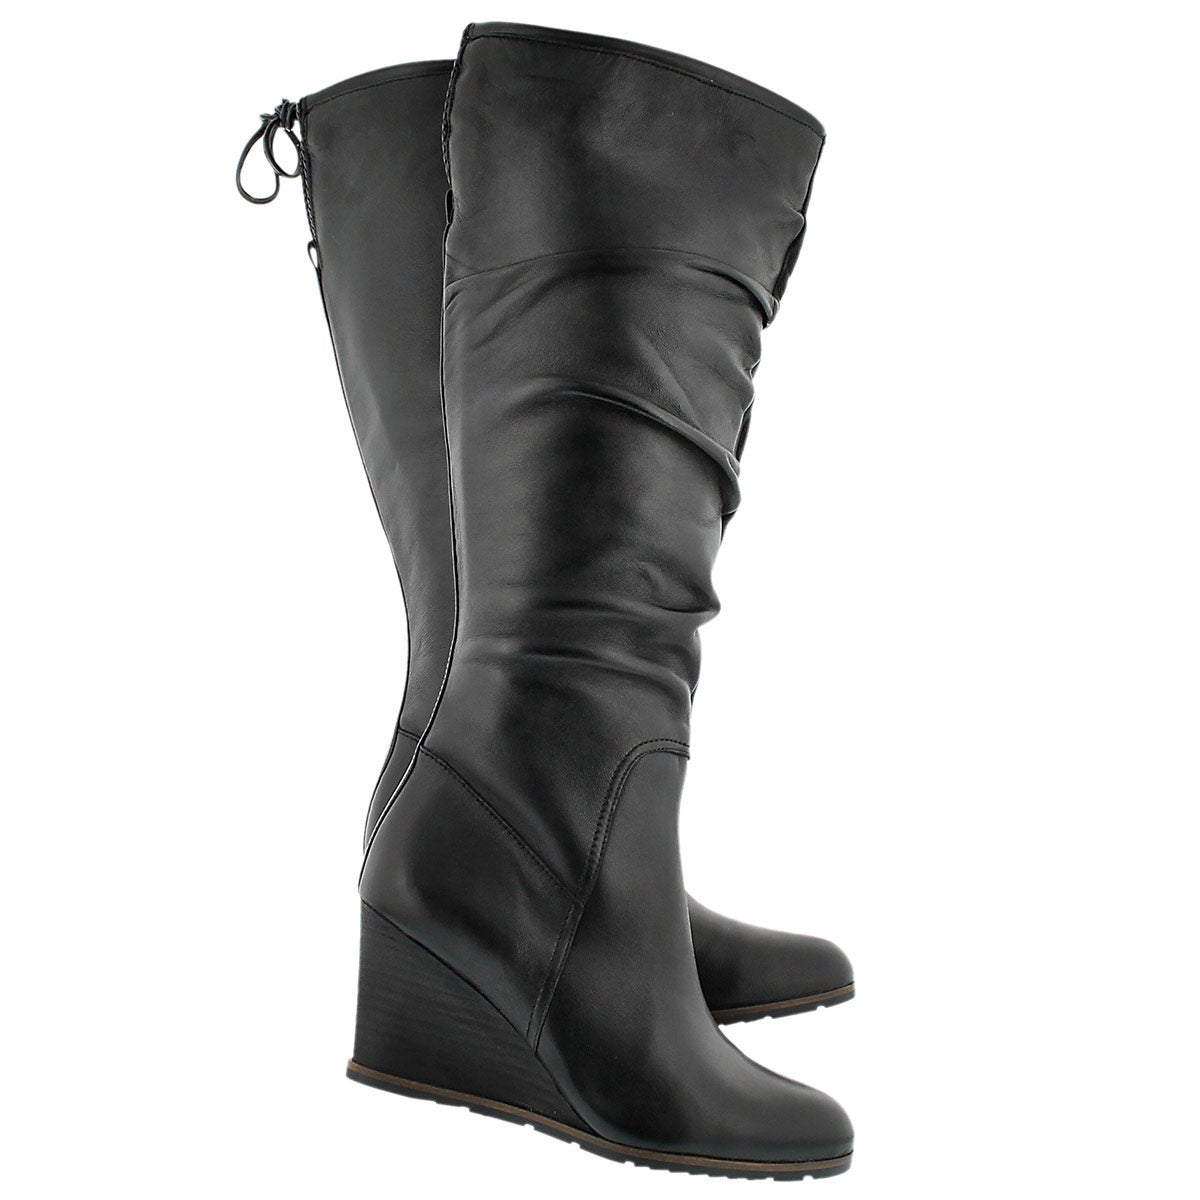 Lds Dominion black hi dress wedge boot